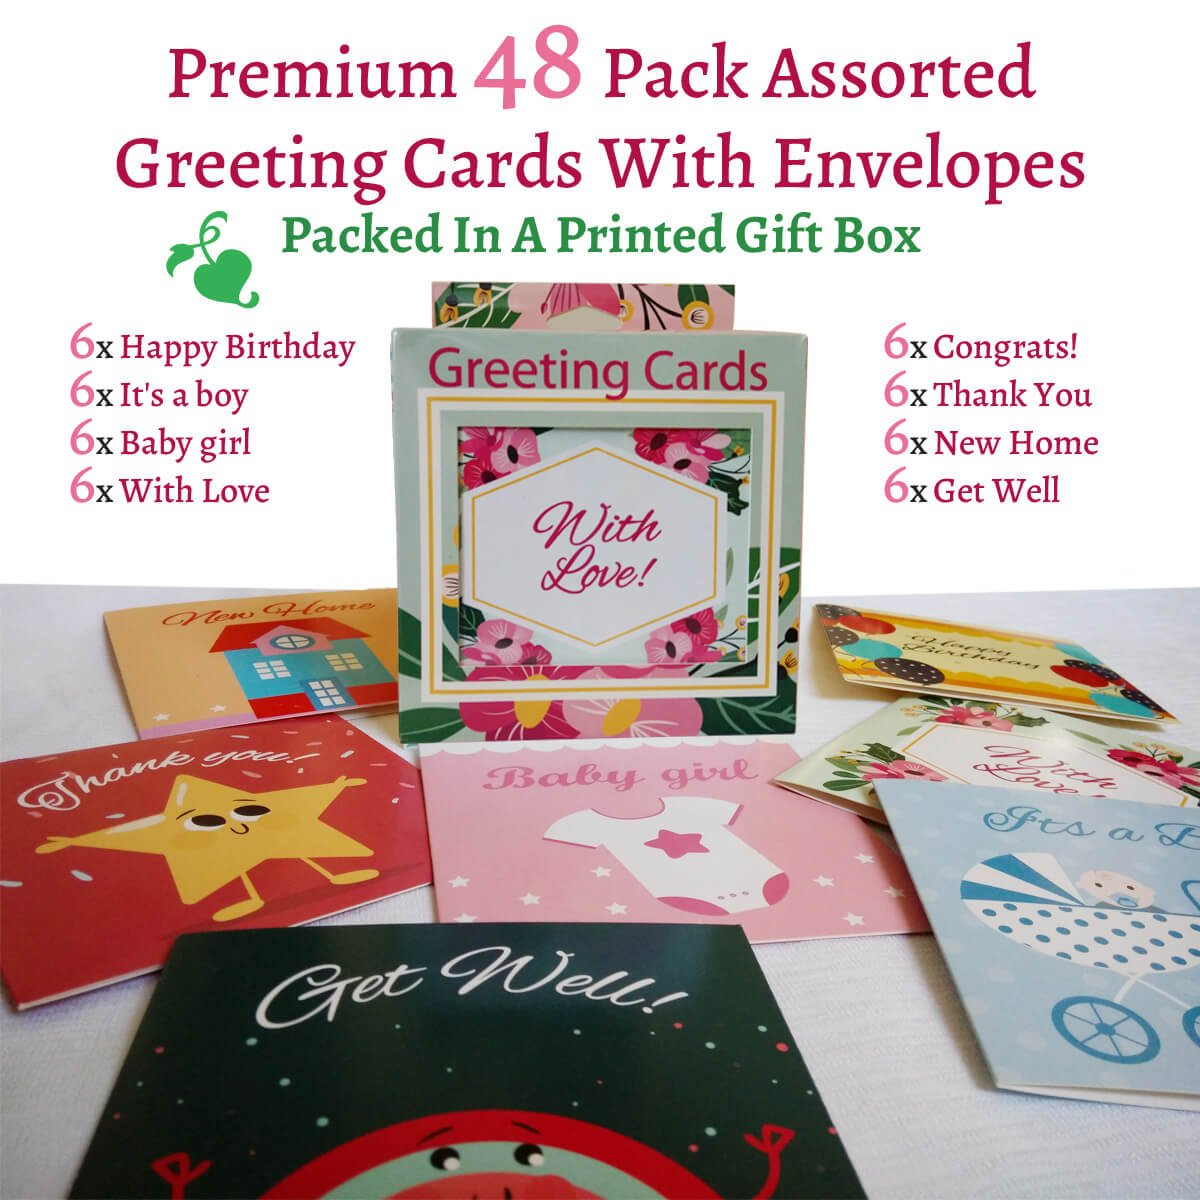 Amazon Premium Greeting Cards 48 Pack Assorted With Envelopes